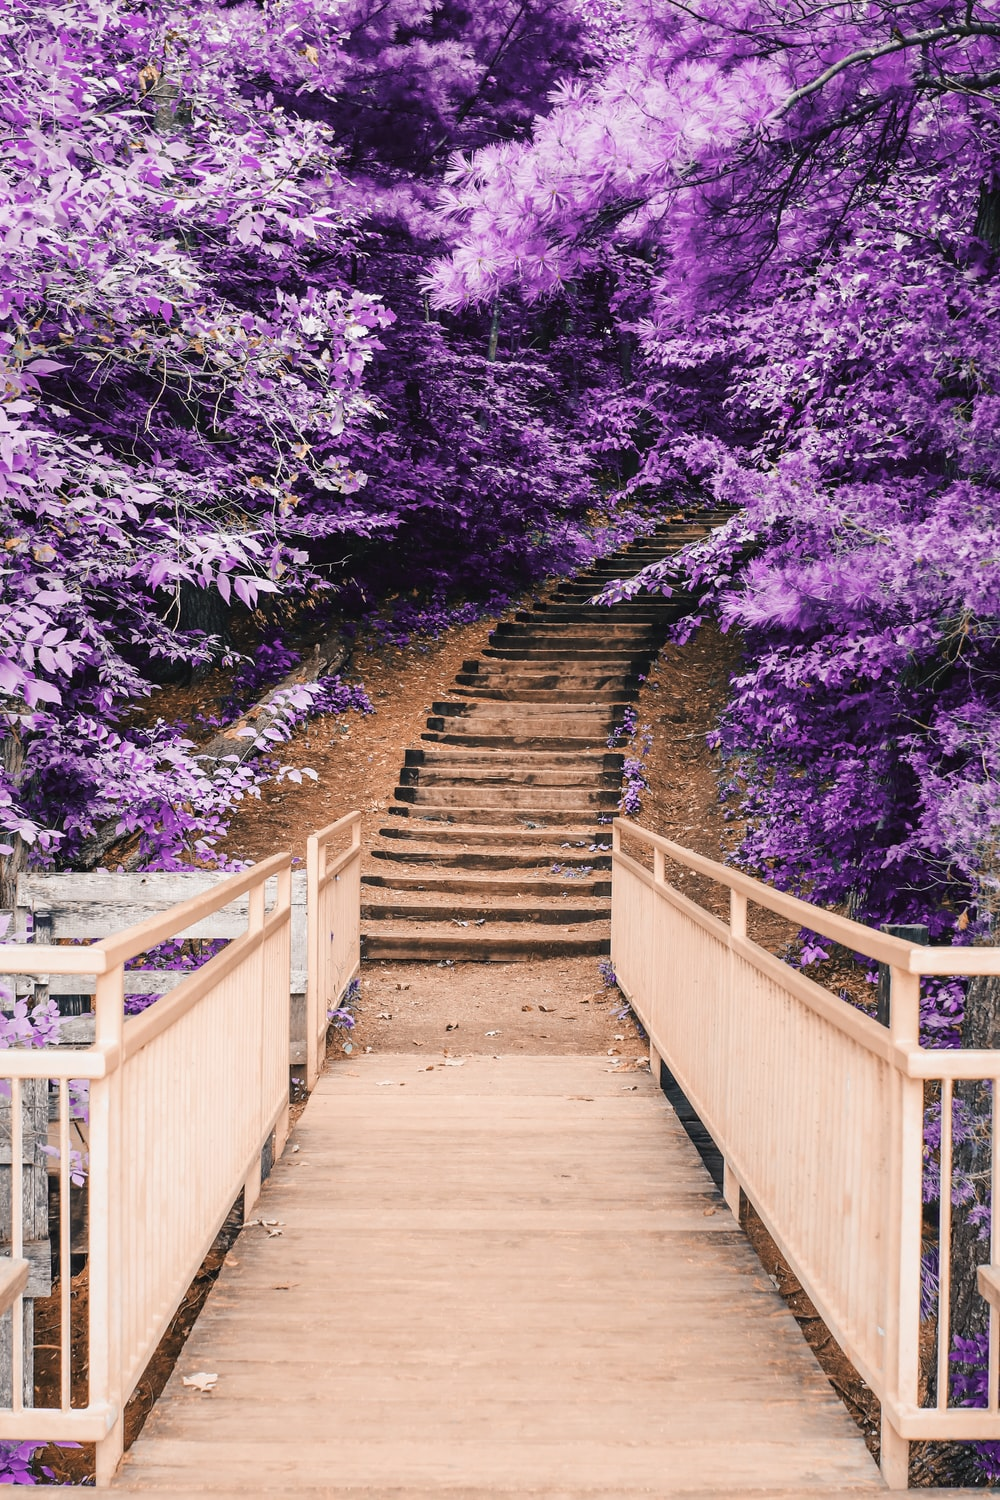 wooden bridge and staircase between purple trees